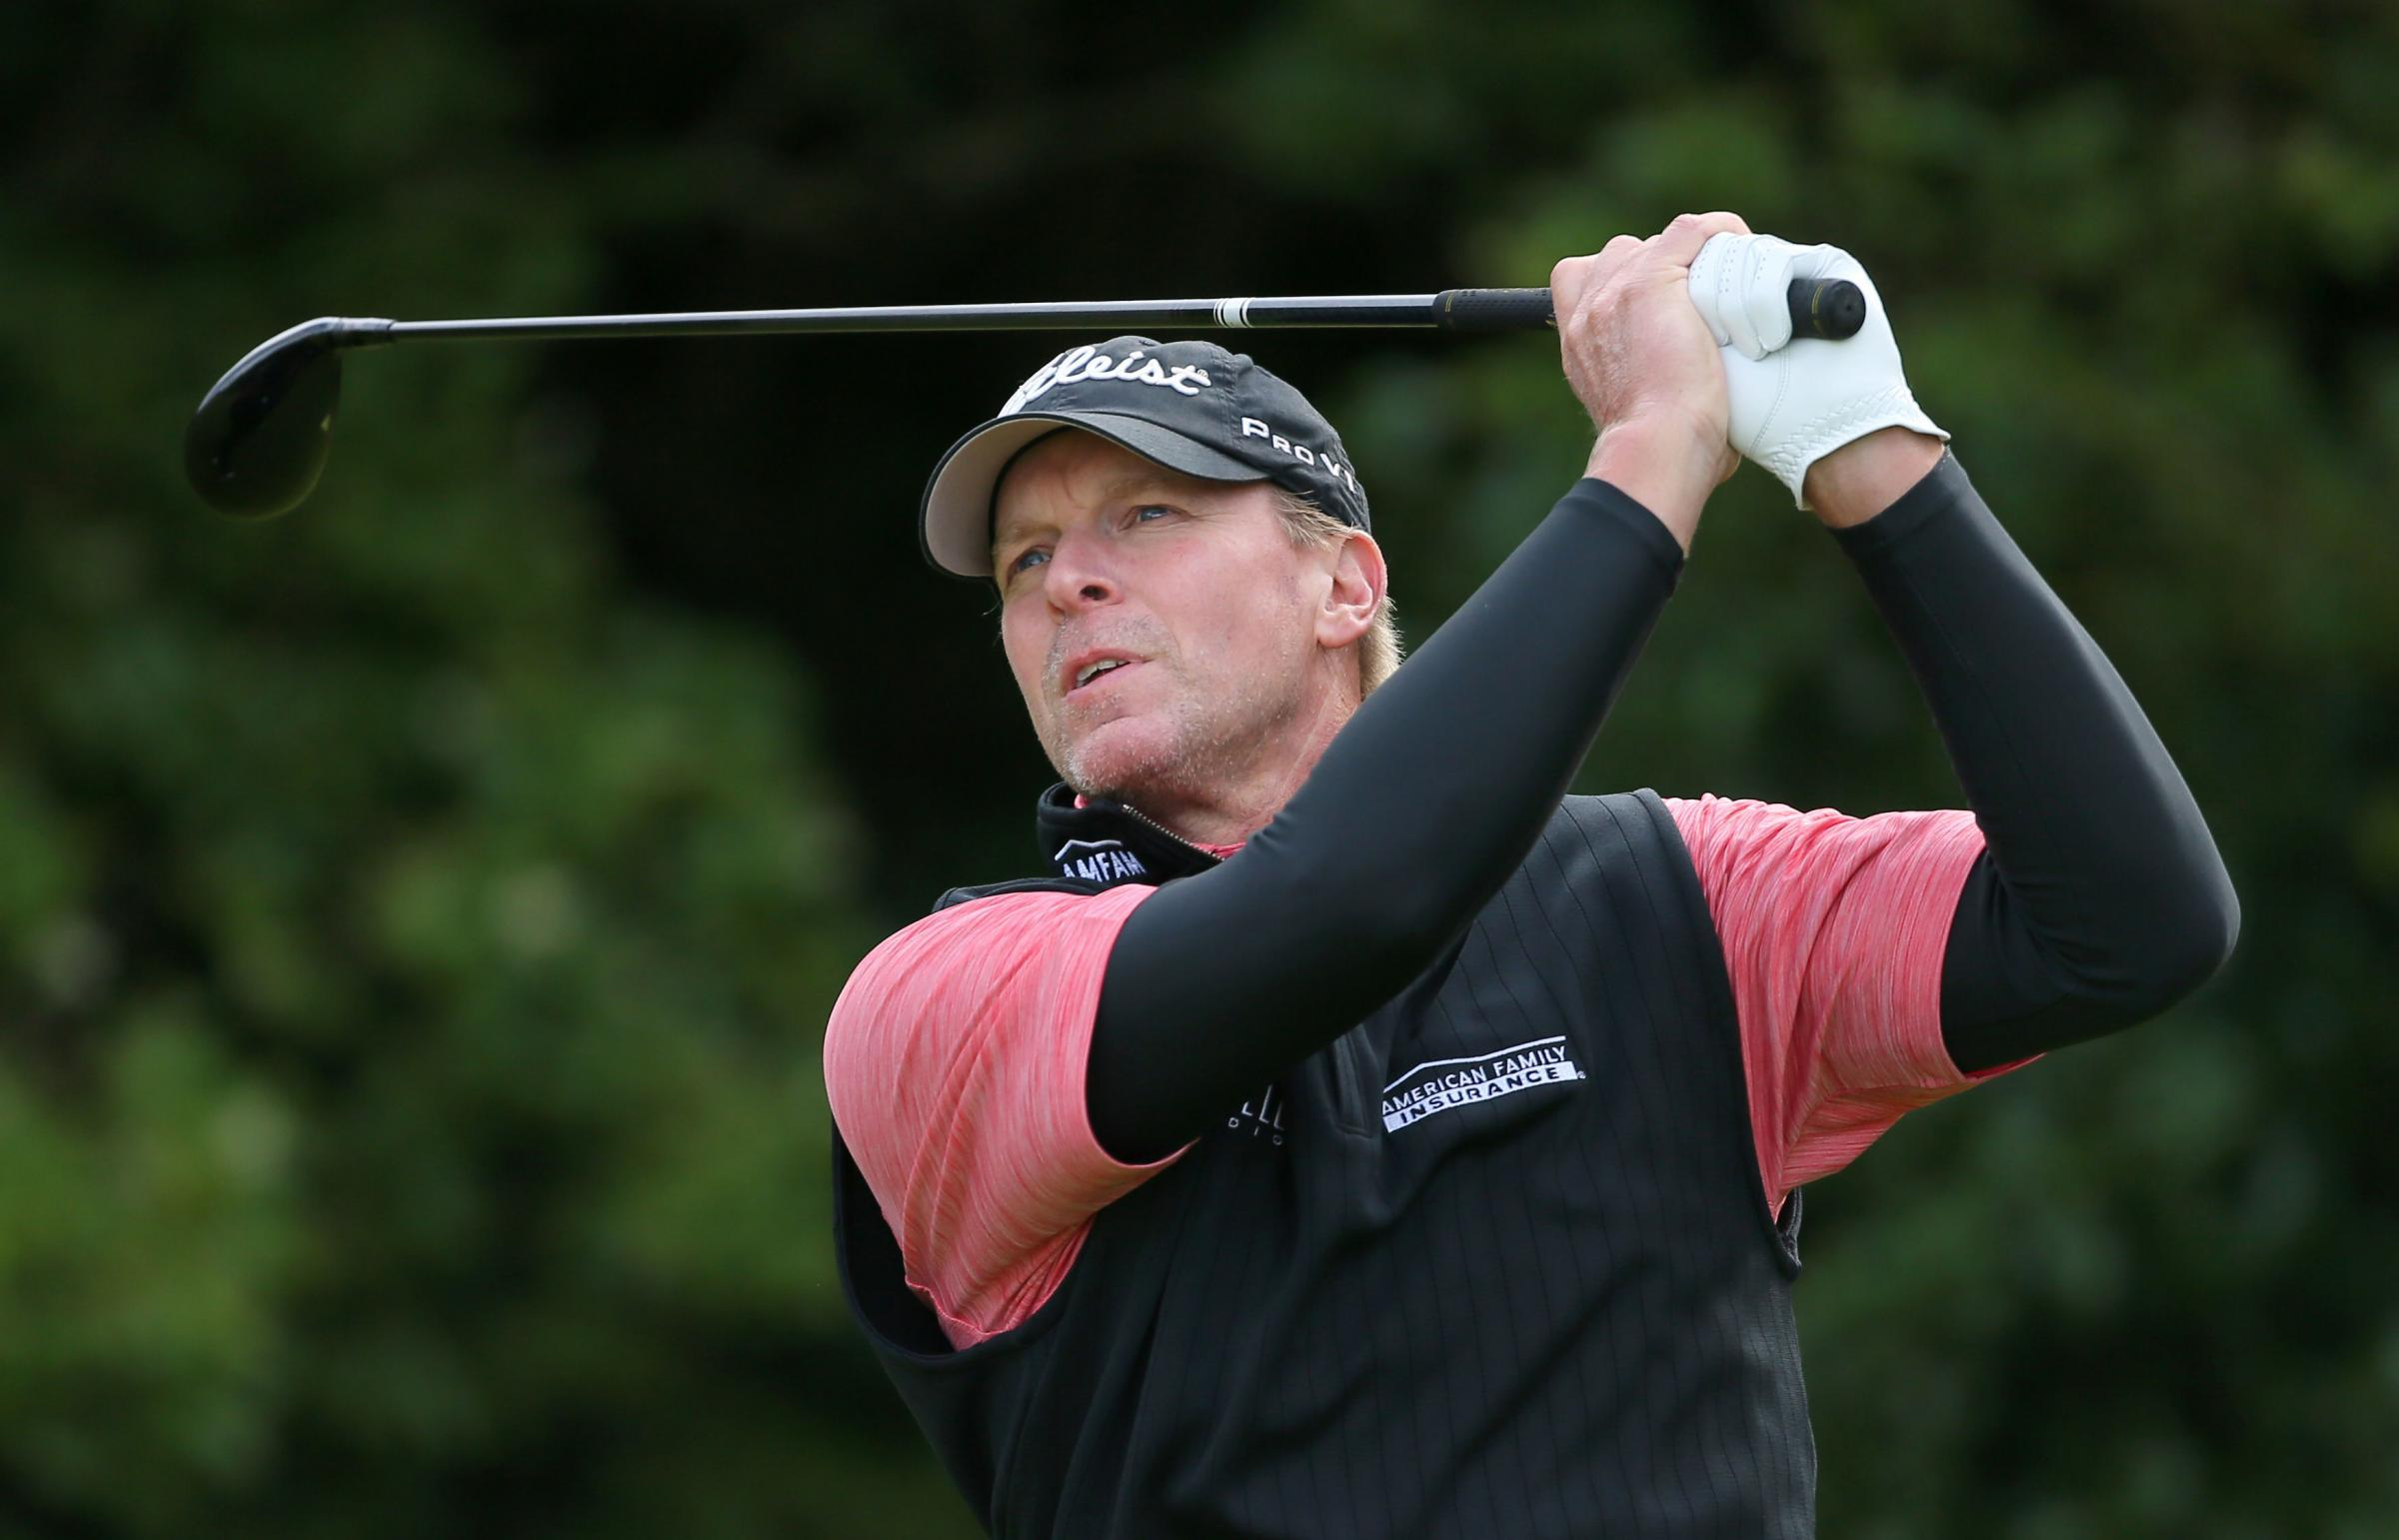 Steve Stricker will be the 2020 US Ryder Cup captain